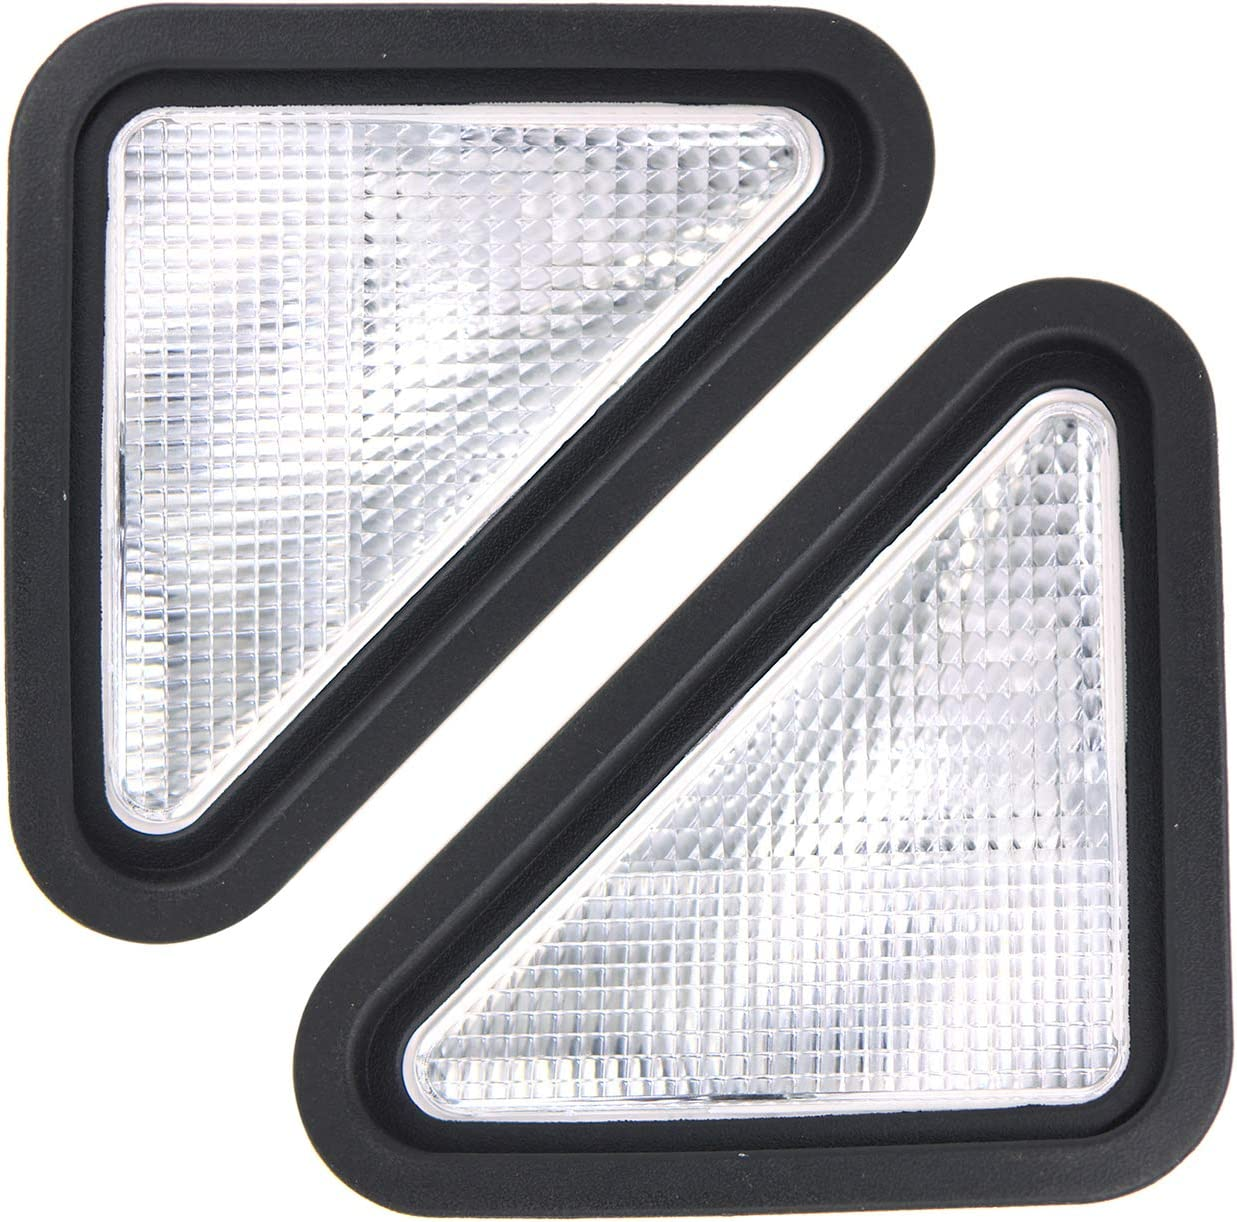 Weelparz Oakland Mall 6718042 LH RH Headlight with Raleigh Mall 6718043 Compatible Bobcat